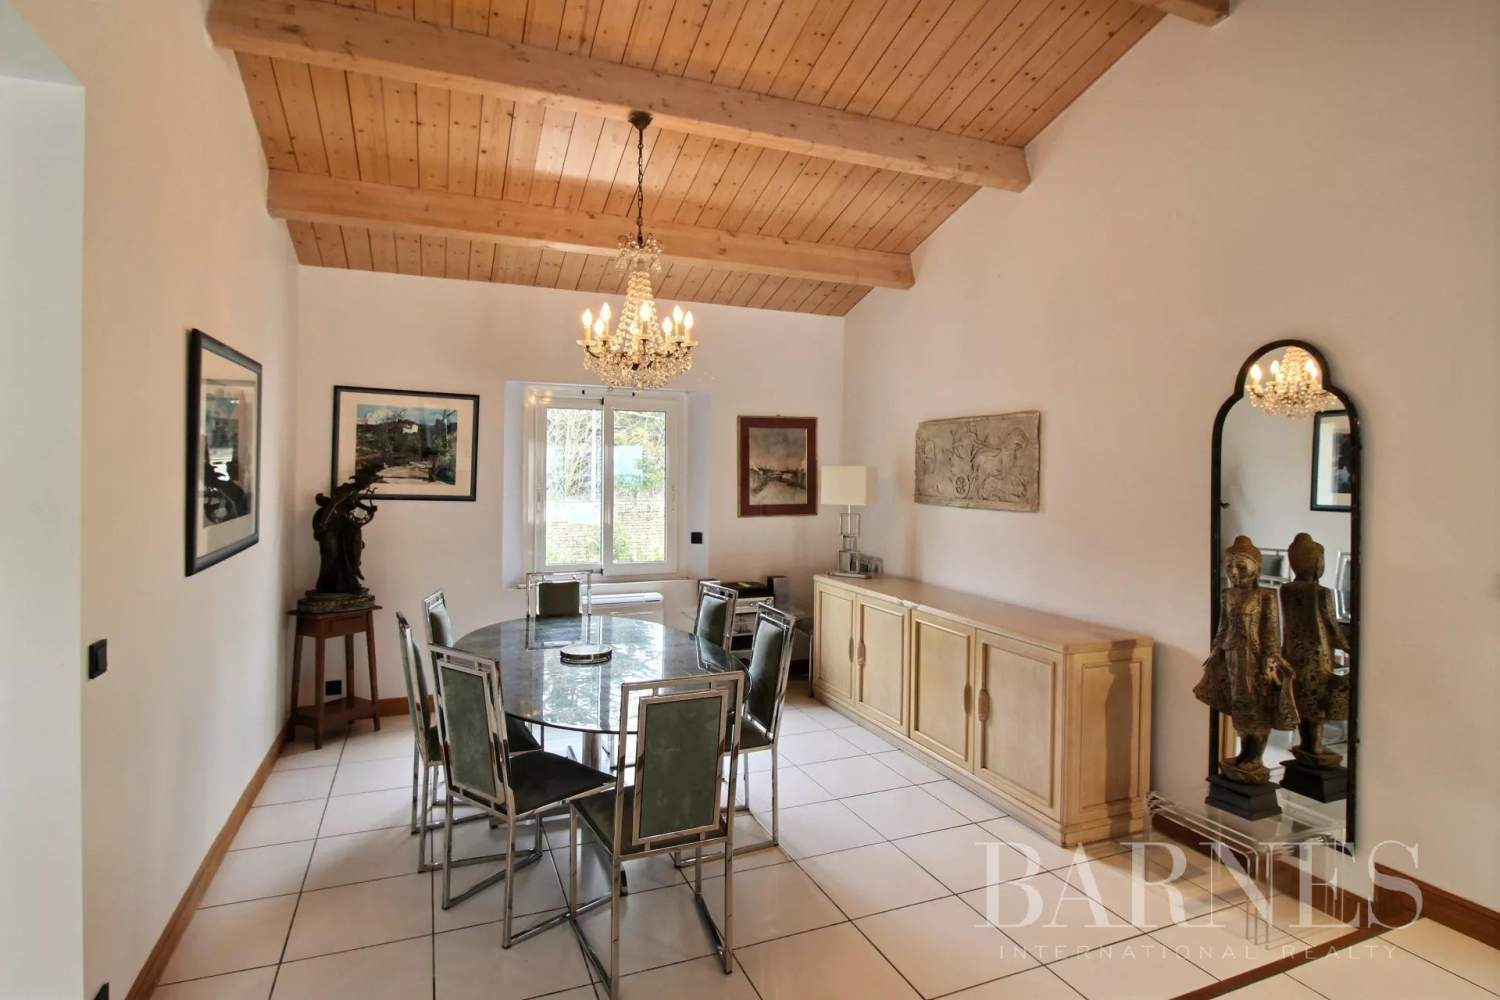 Rivedoux-Plage  - House 5 Bedrooms - picture 4